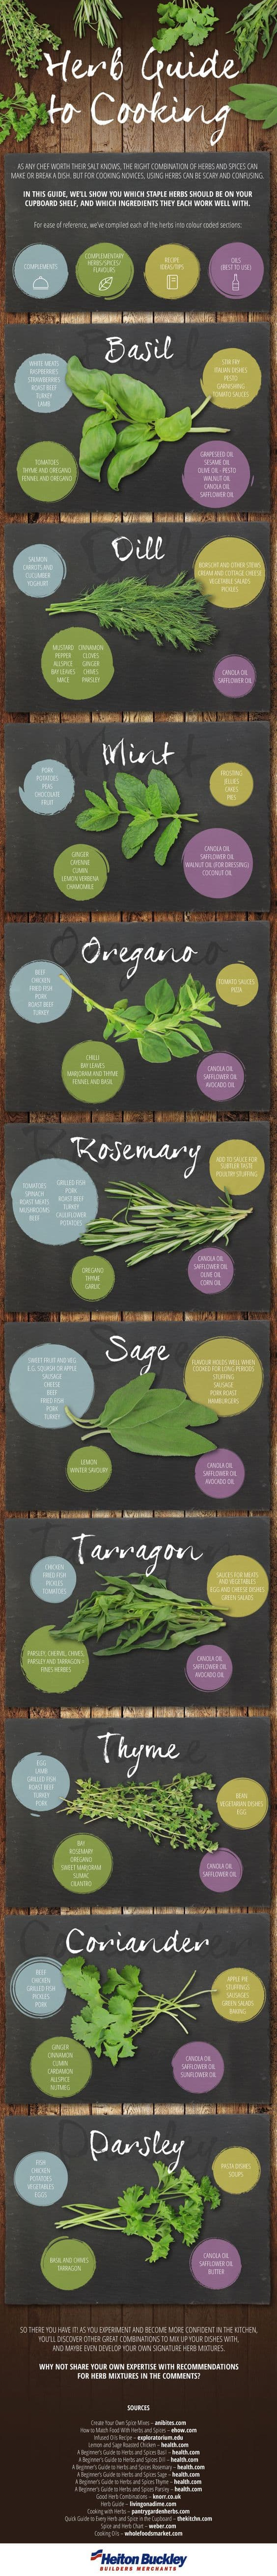 Guide To Cooking With Herbs